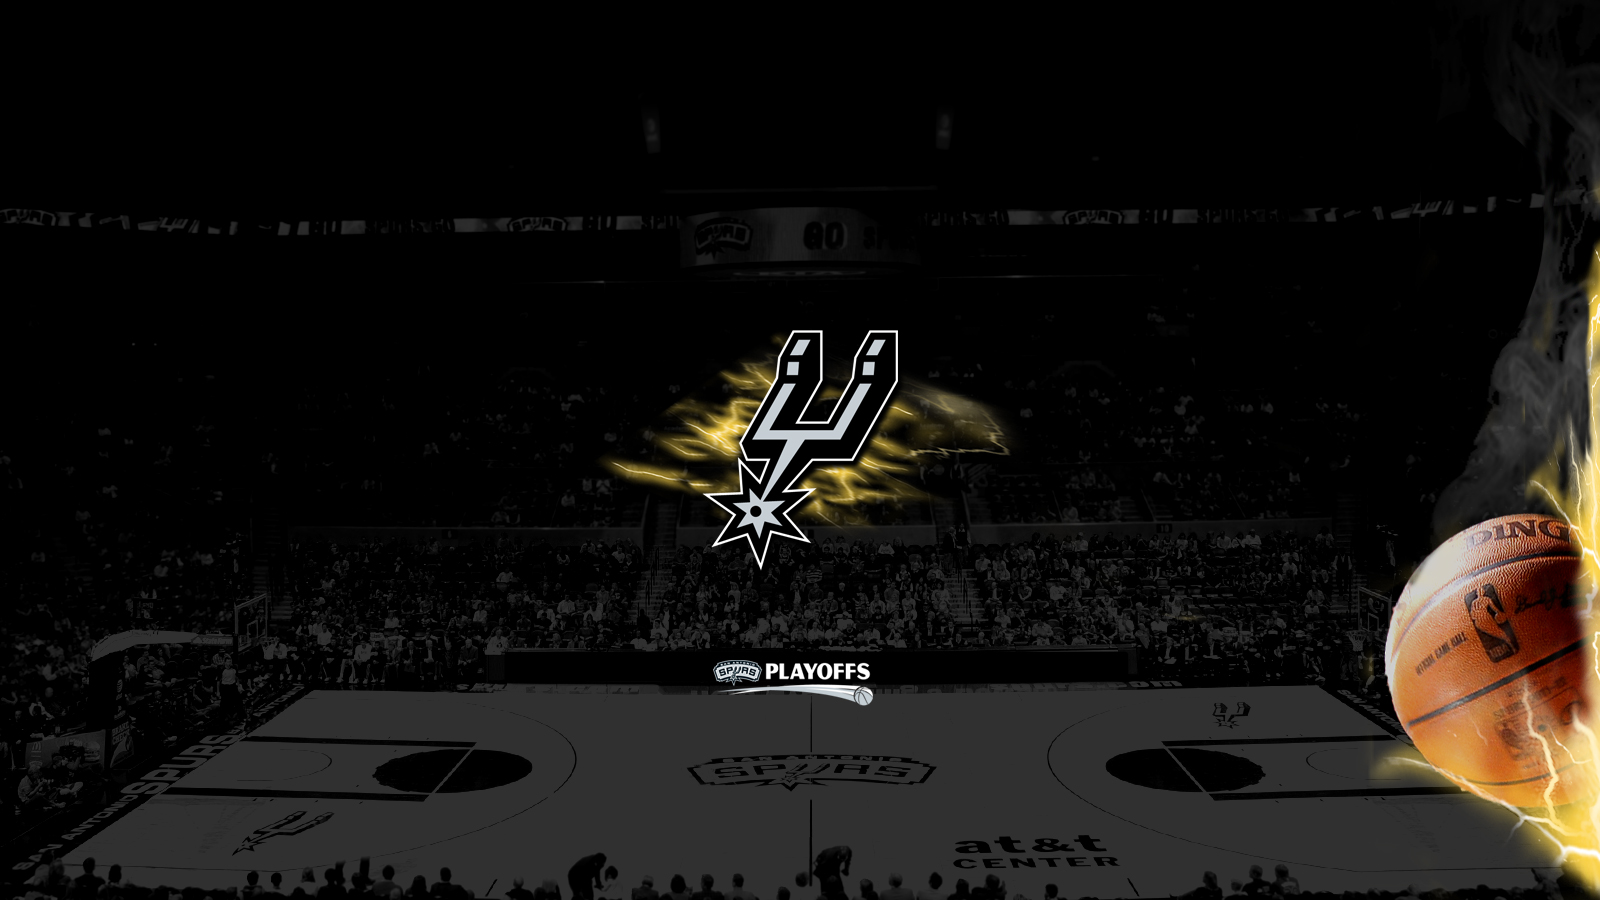 Desktop Playoff Wallpapers THE OFFICIAL SITE OF THE SAN ANTONIO 1600x900